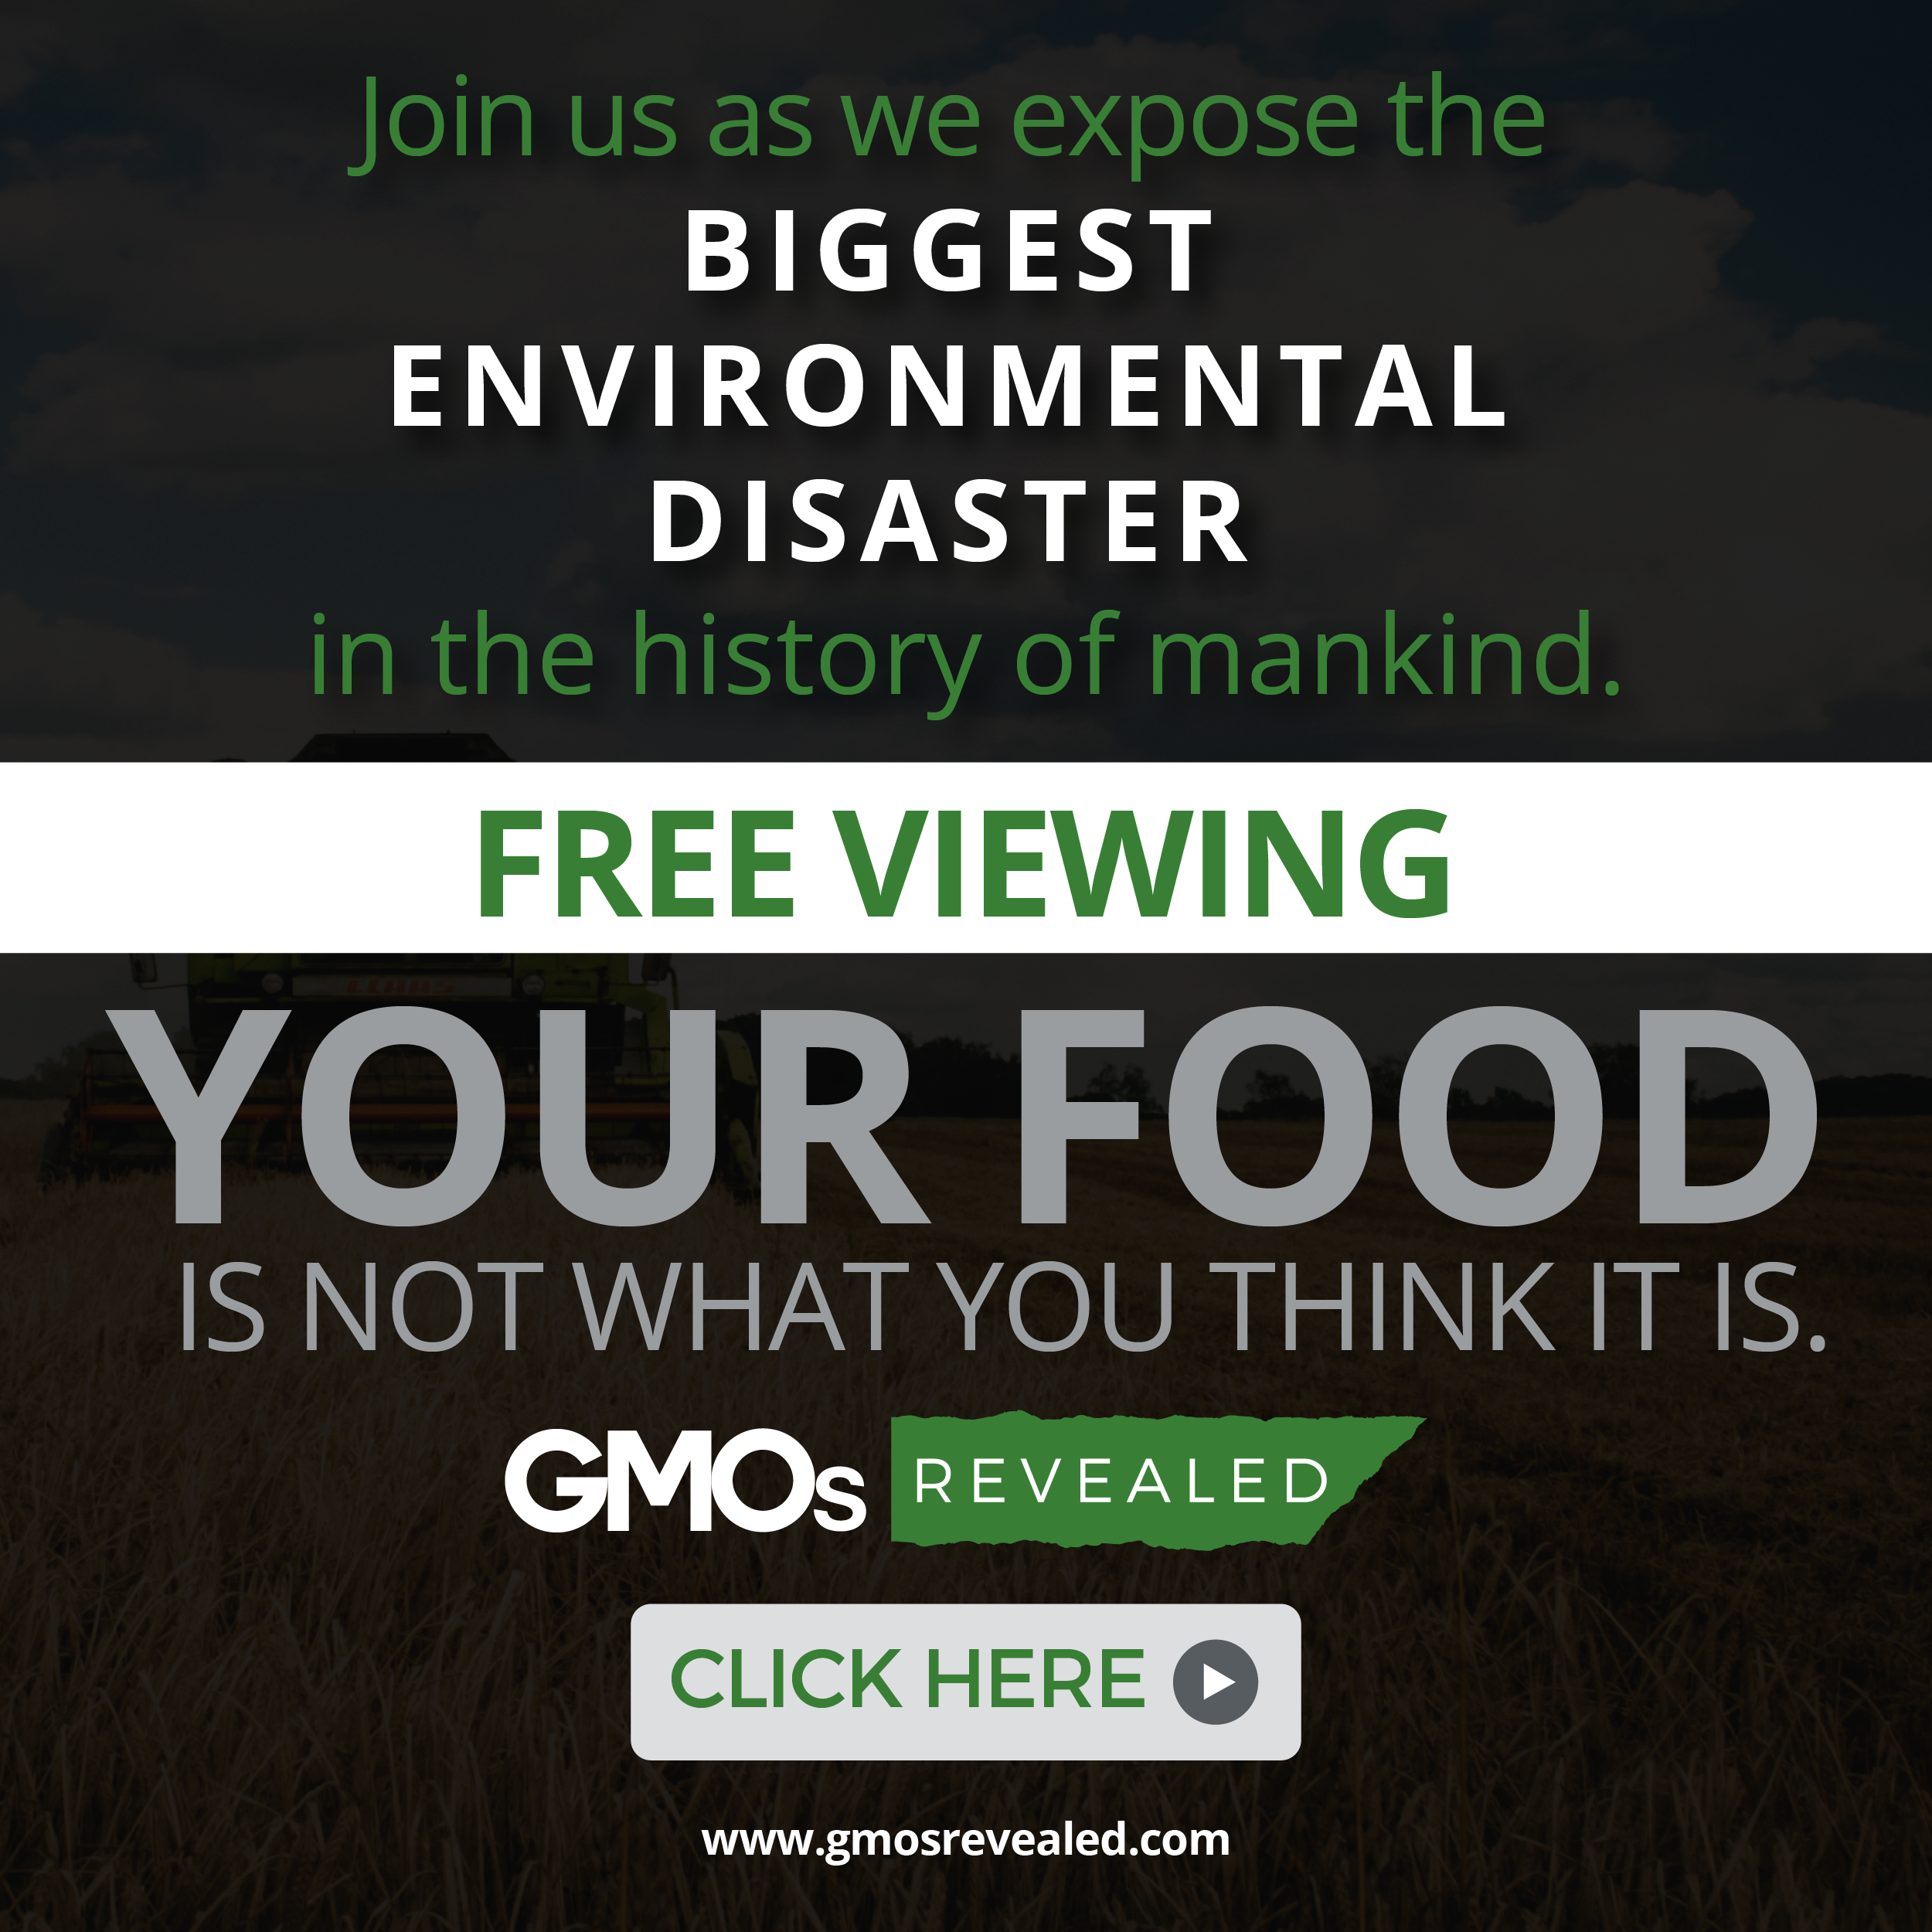 gmos revealed video player